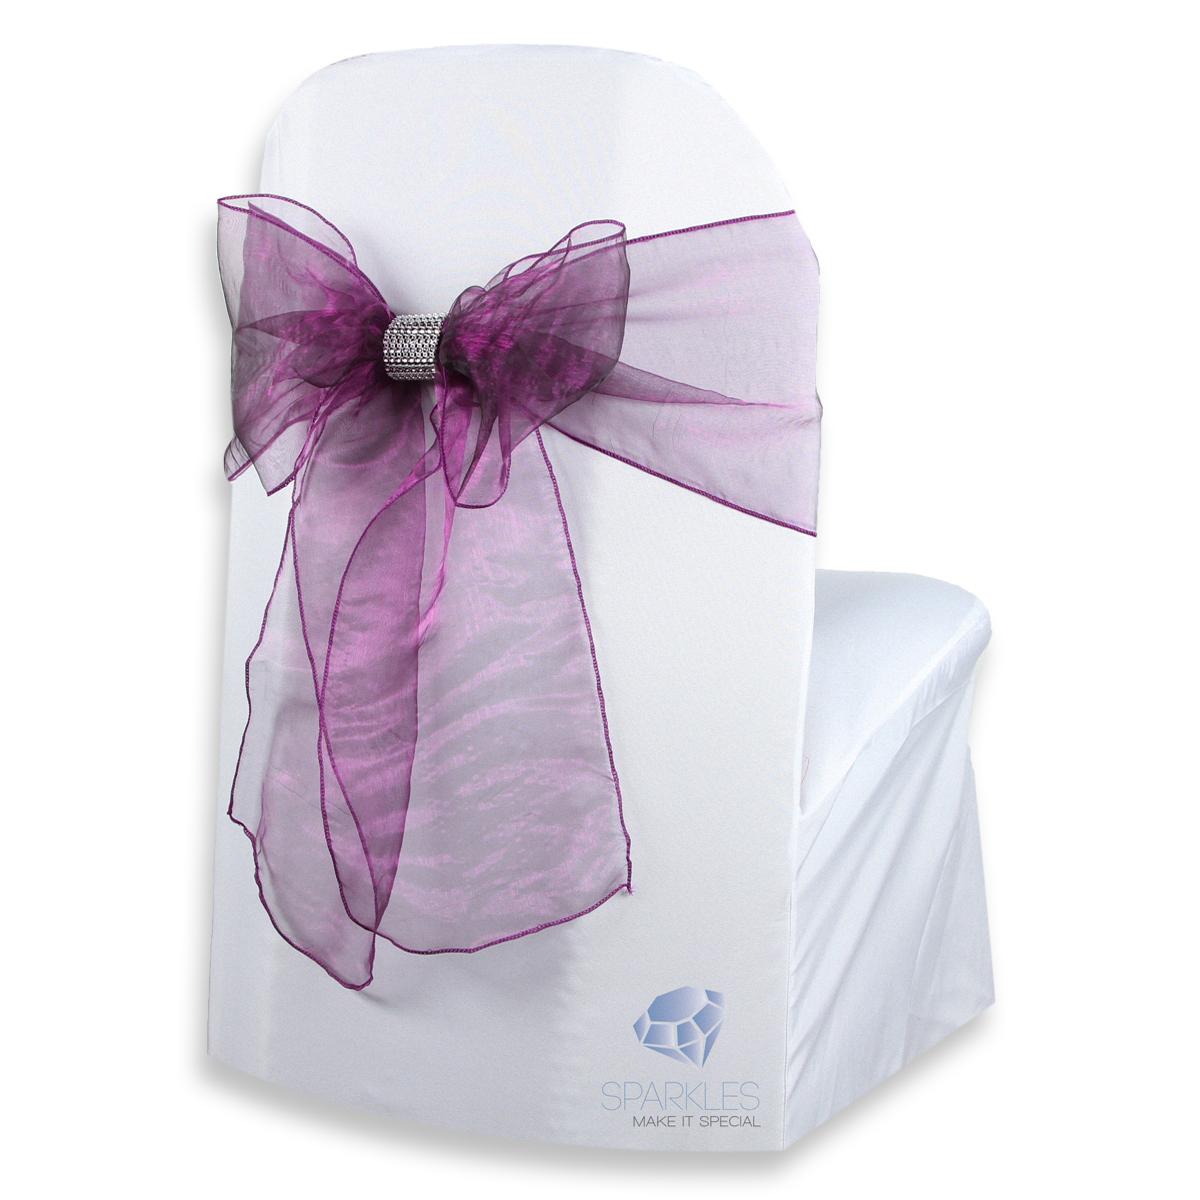 chair covers and bows ebay adult bath 100 pcs organza cover bow sash 108 quotx8 quot plum purple